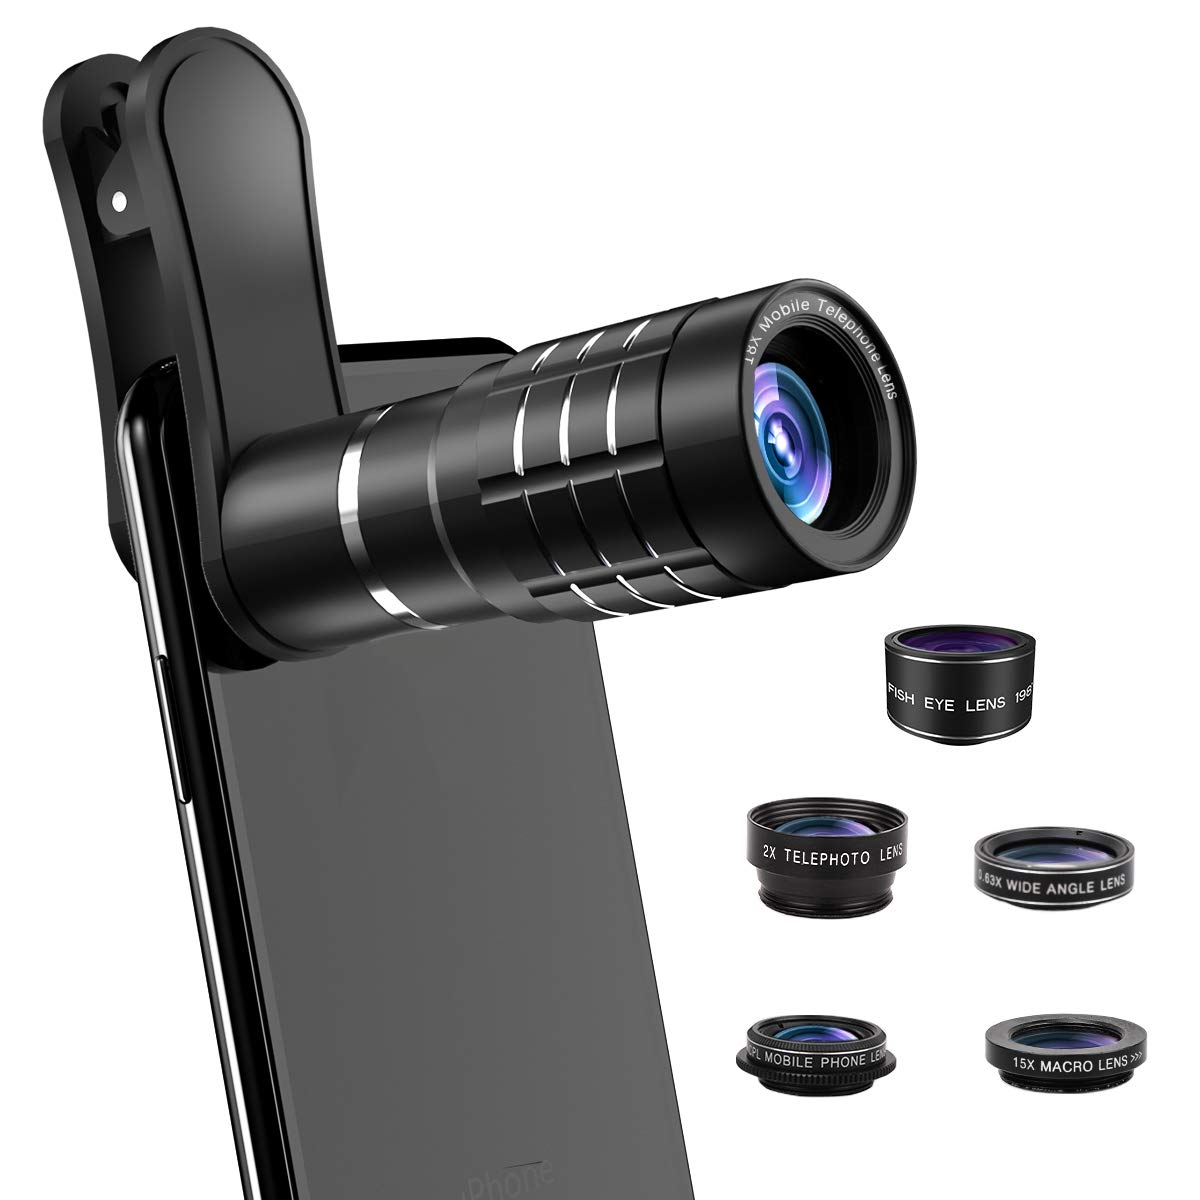 Phone Camera Lens, [2019 Latest Version] AOMAIS 9 in 1 Phone Lens Kit, 18X Zoom Telephoto Lens Super Wide Angle Lens Macro Lens Fisheye Lens 2X Telephoto Lens CPL, Compatible with iPhone X XS & More